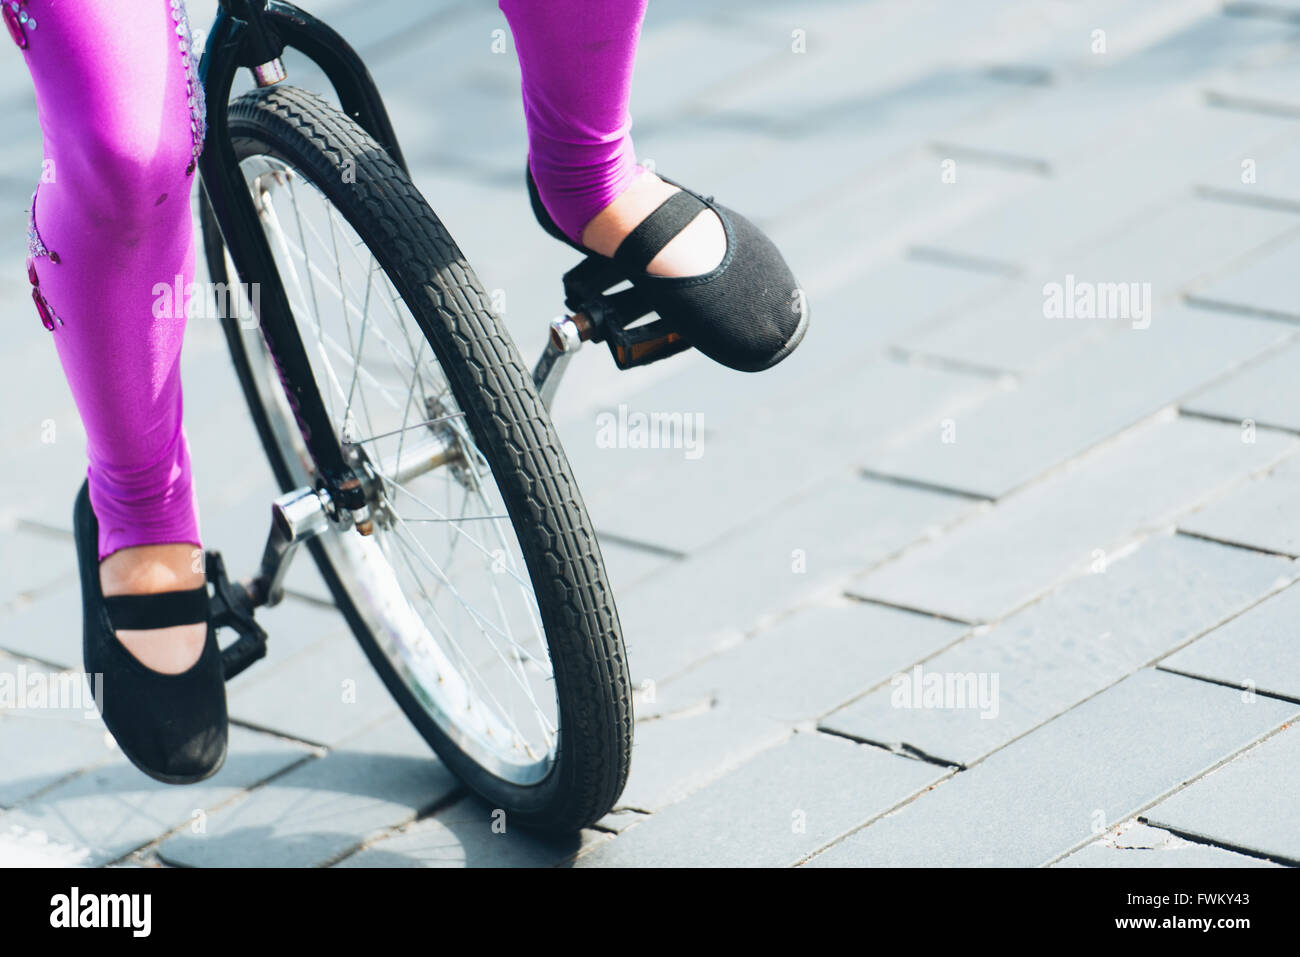 La section basse de Woman Riding Bicycle On Street Photo Stock